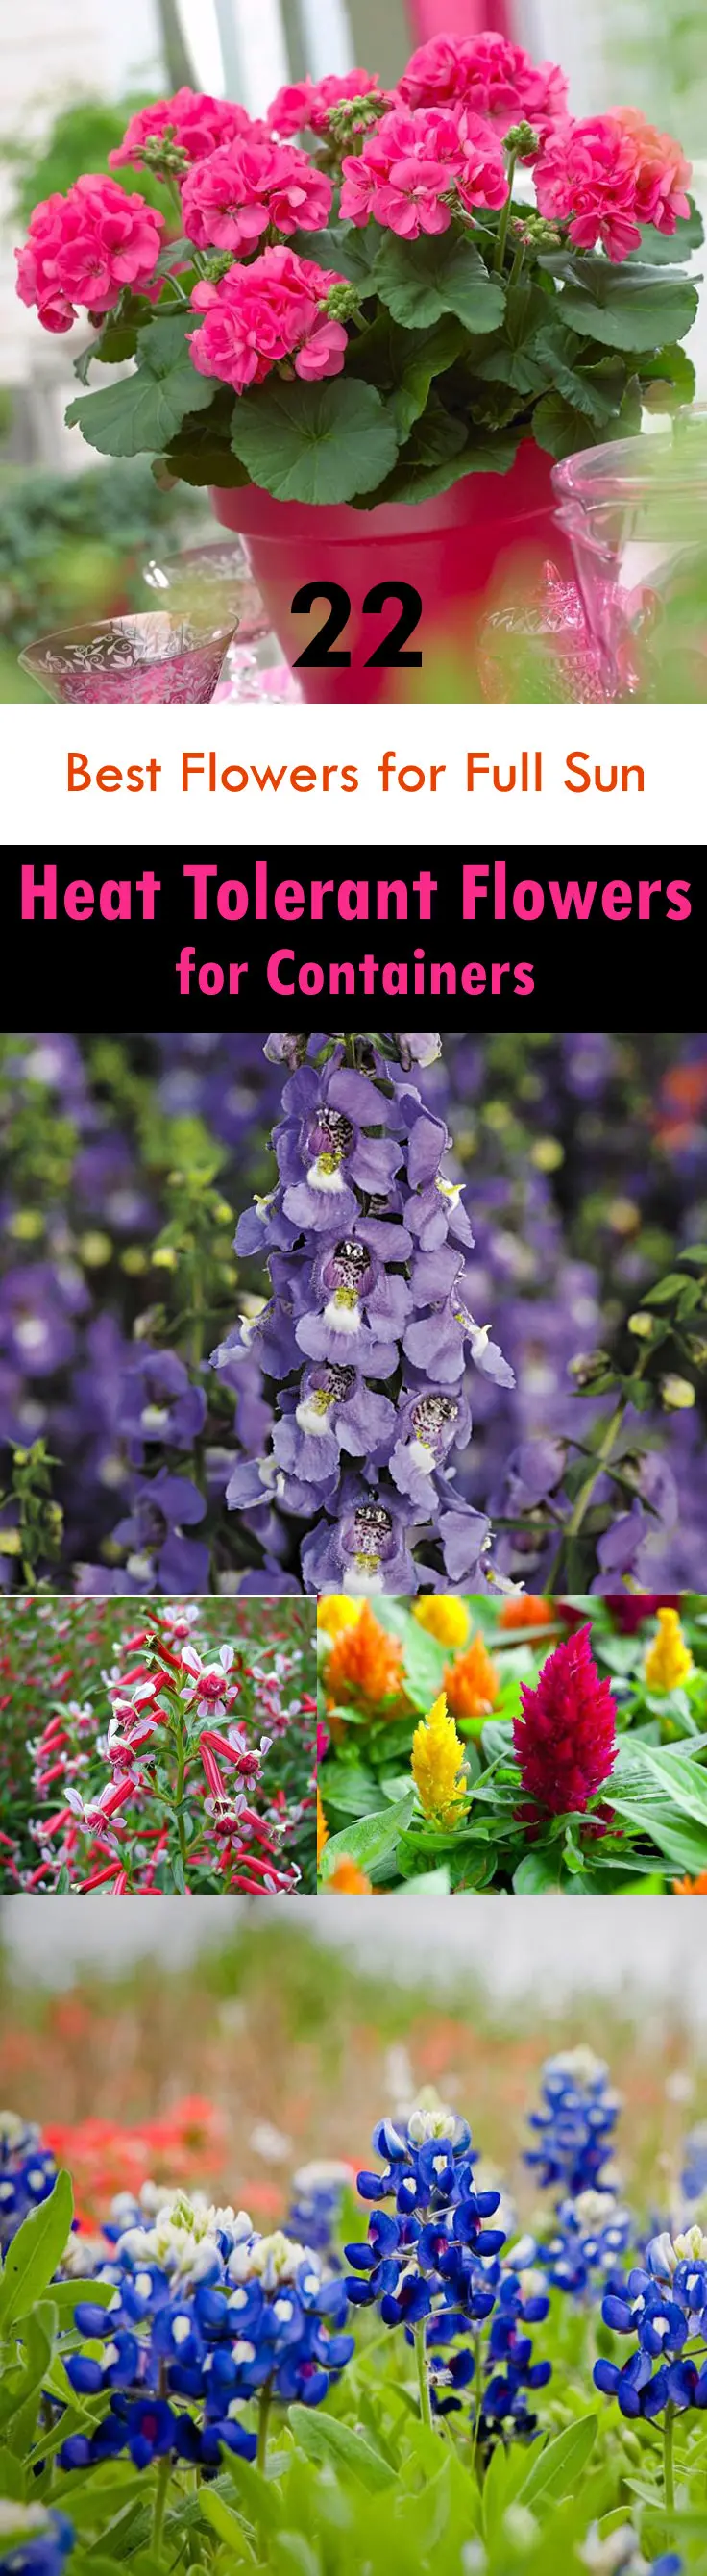 Photo of 22 Best Flowers for Full Sun | Heat Tolerant Flowers for Containers